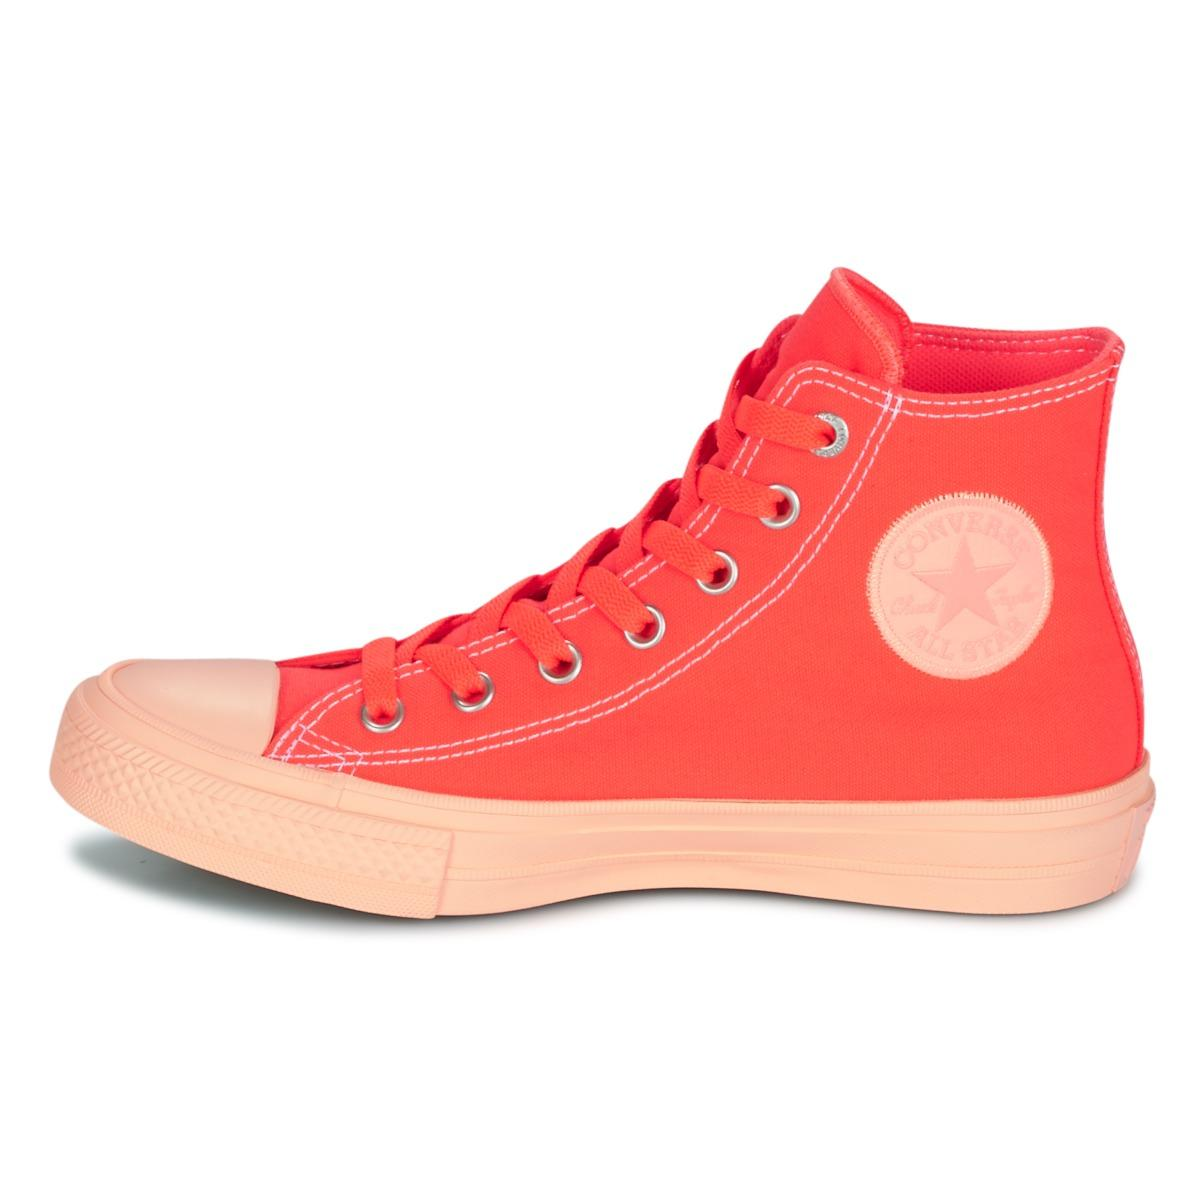 Converse Chuck Taylor All Star Ii Pastel Midsoles Hi Shoes (high-top Trainers) in Orange